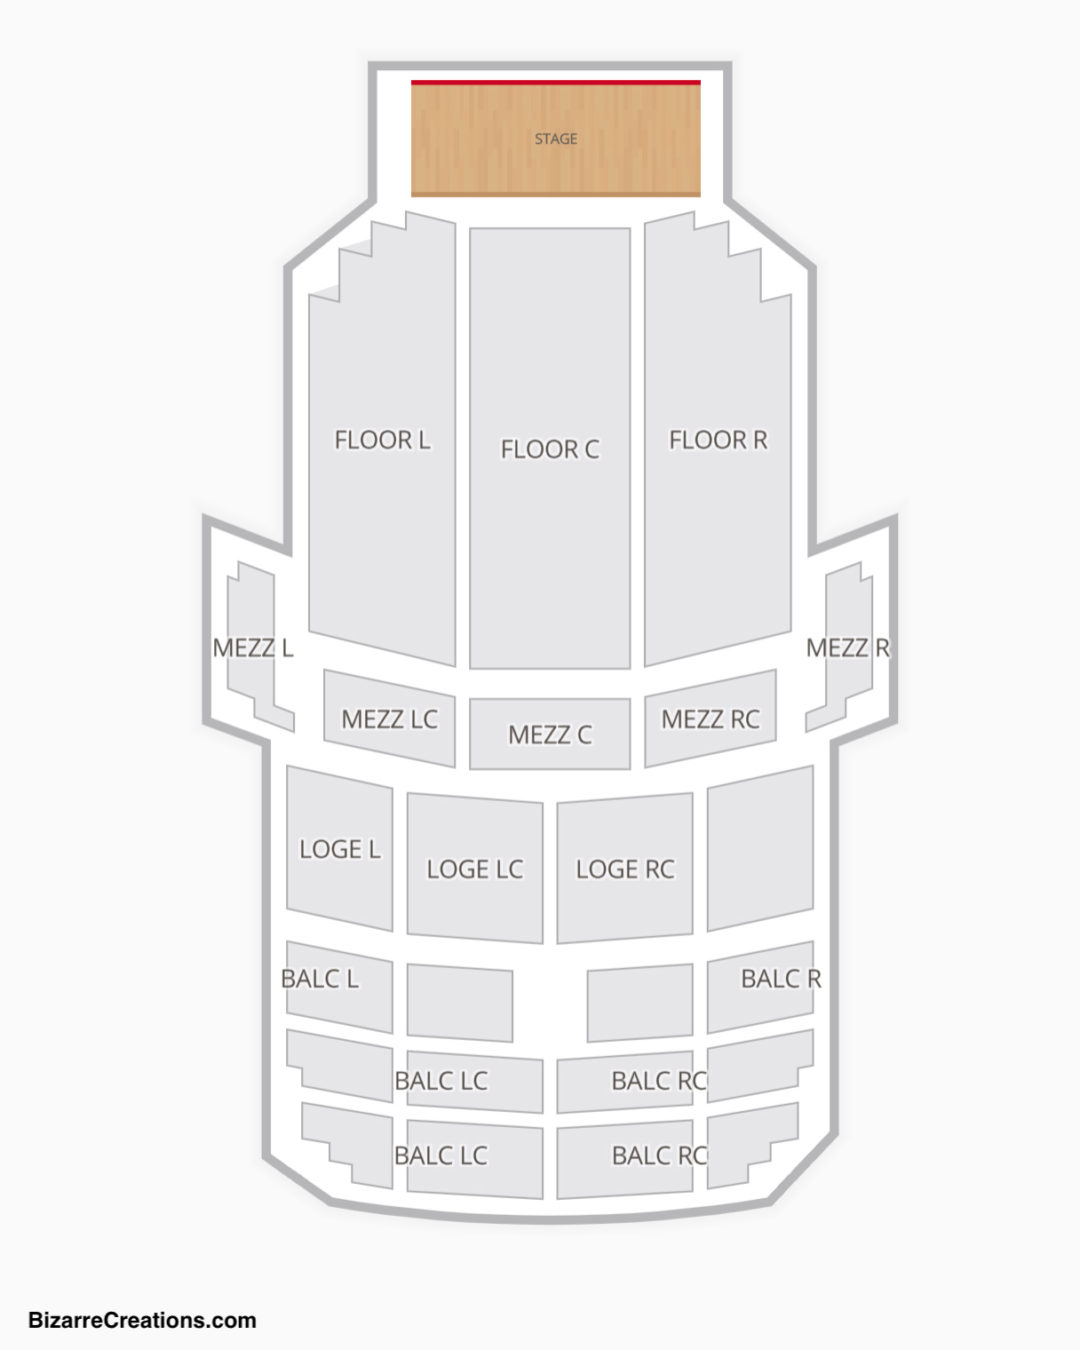 Fisher Theater Seating Chart : fisher, theater, seating, chart, Fisher, Theatre, Seating, Chart, Charts, Tickets